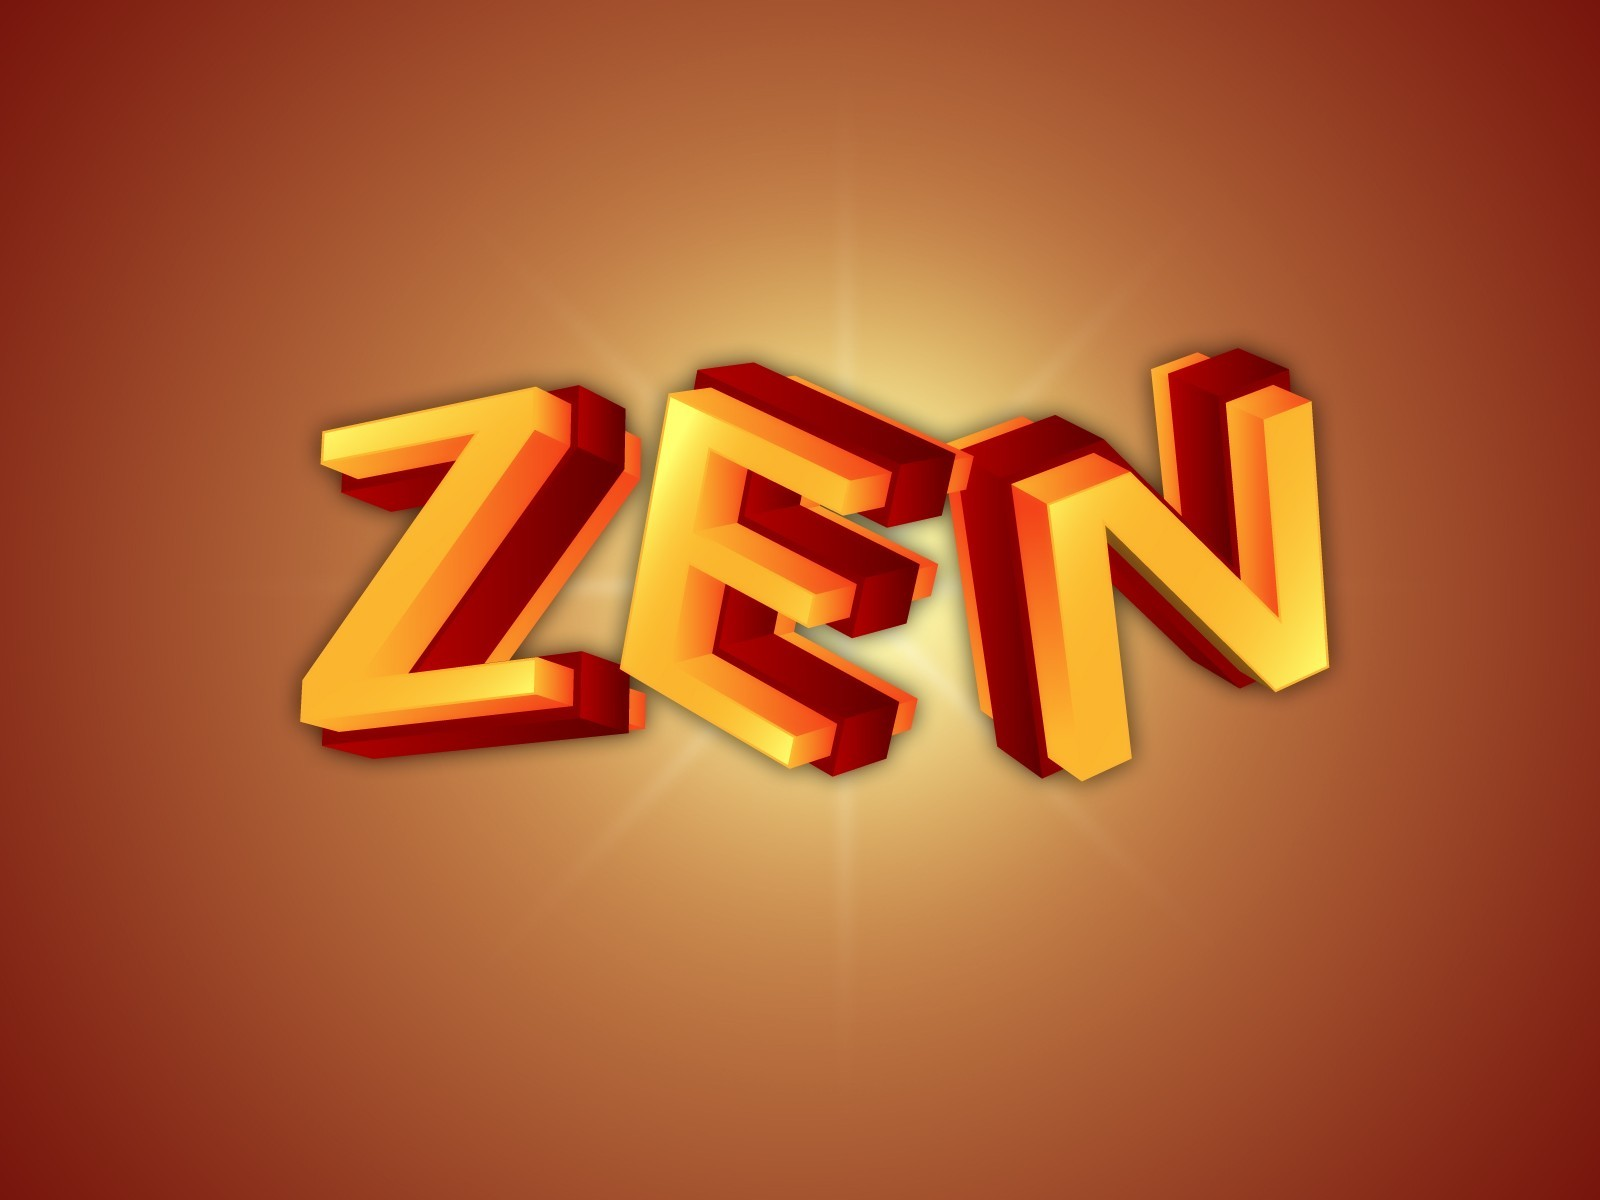 Typography Zen Syn.Hider HD Wallpaper